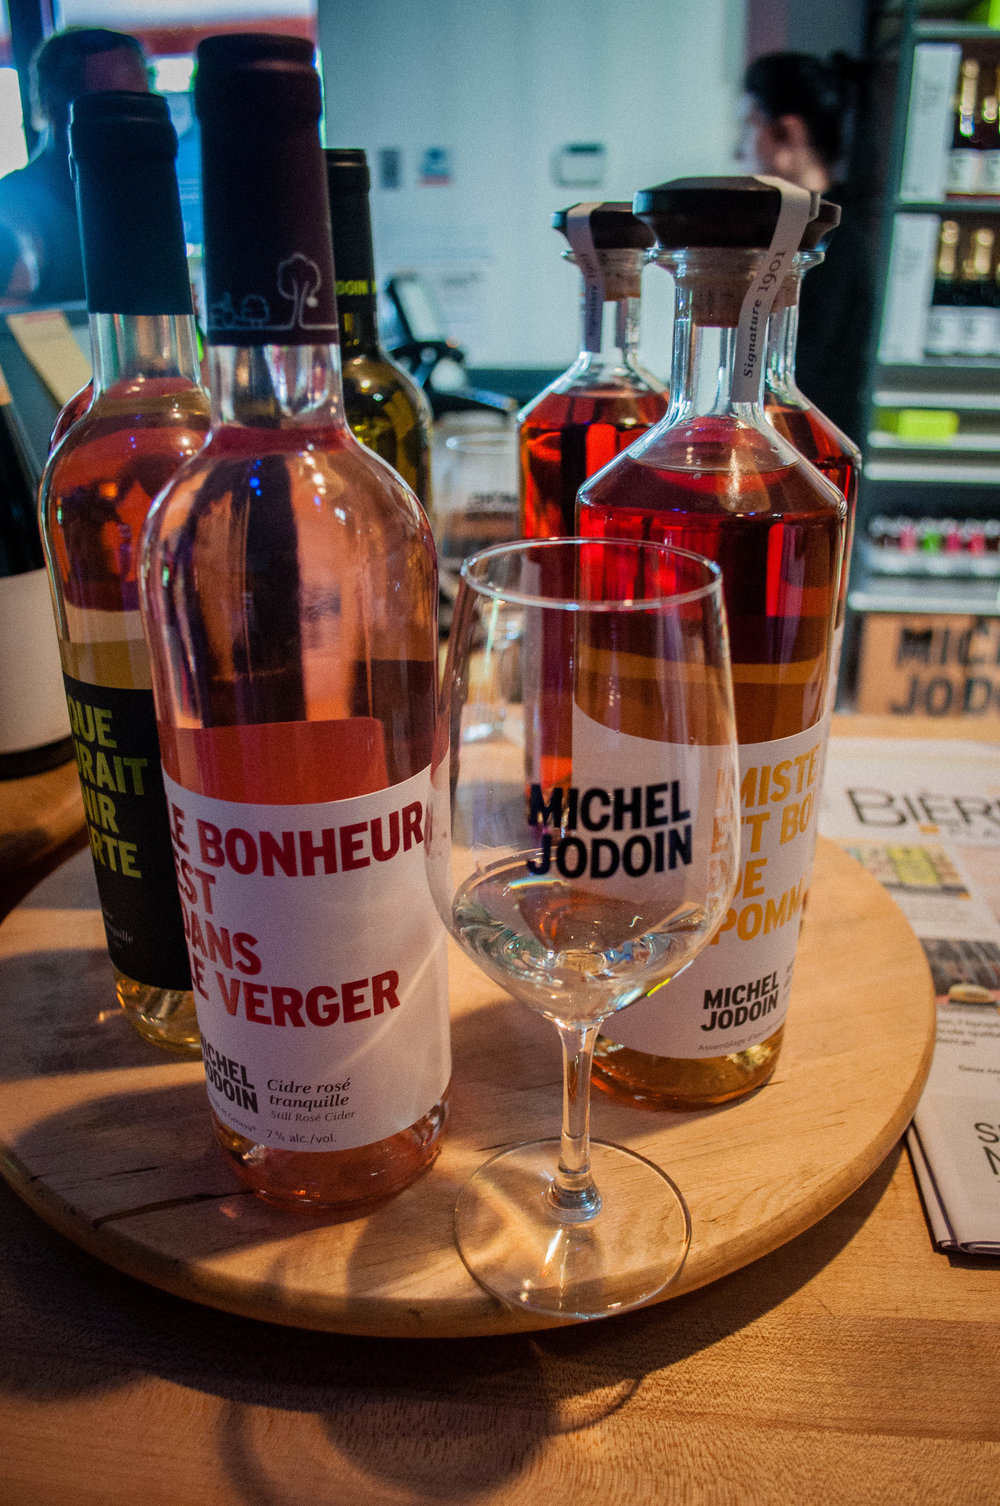 Different types of ciders offered at Michel Jodoin